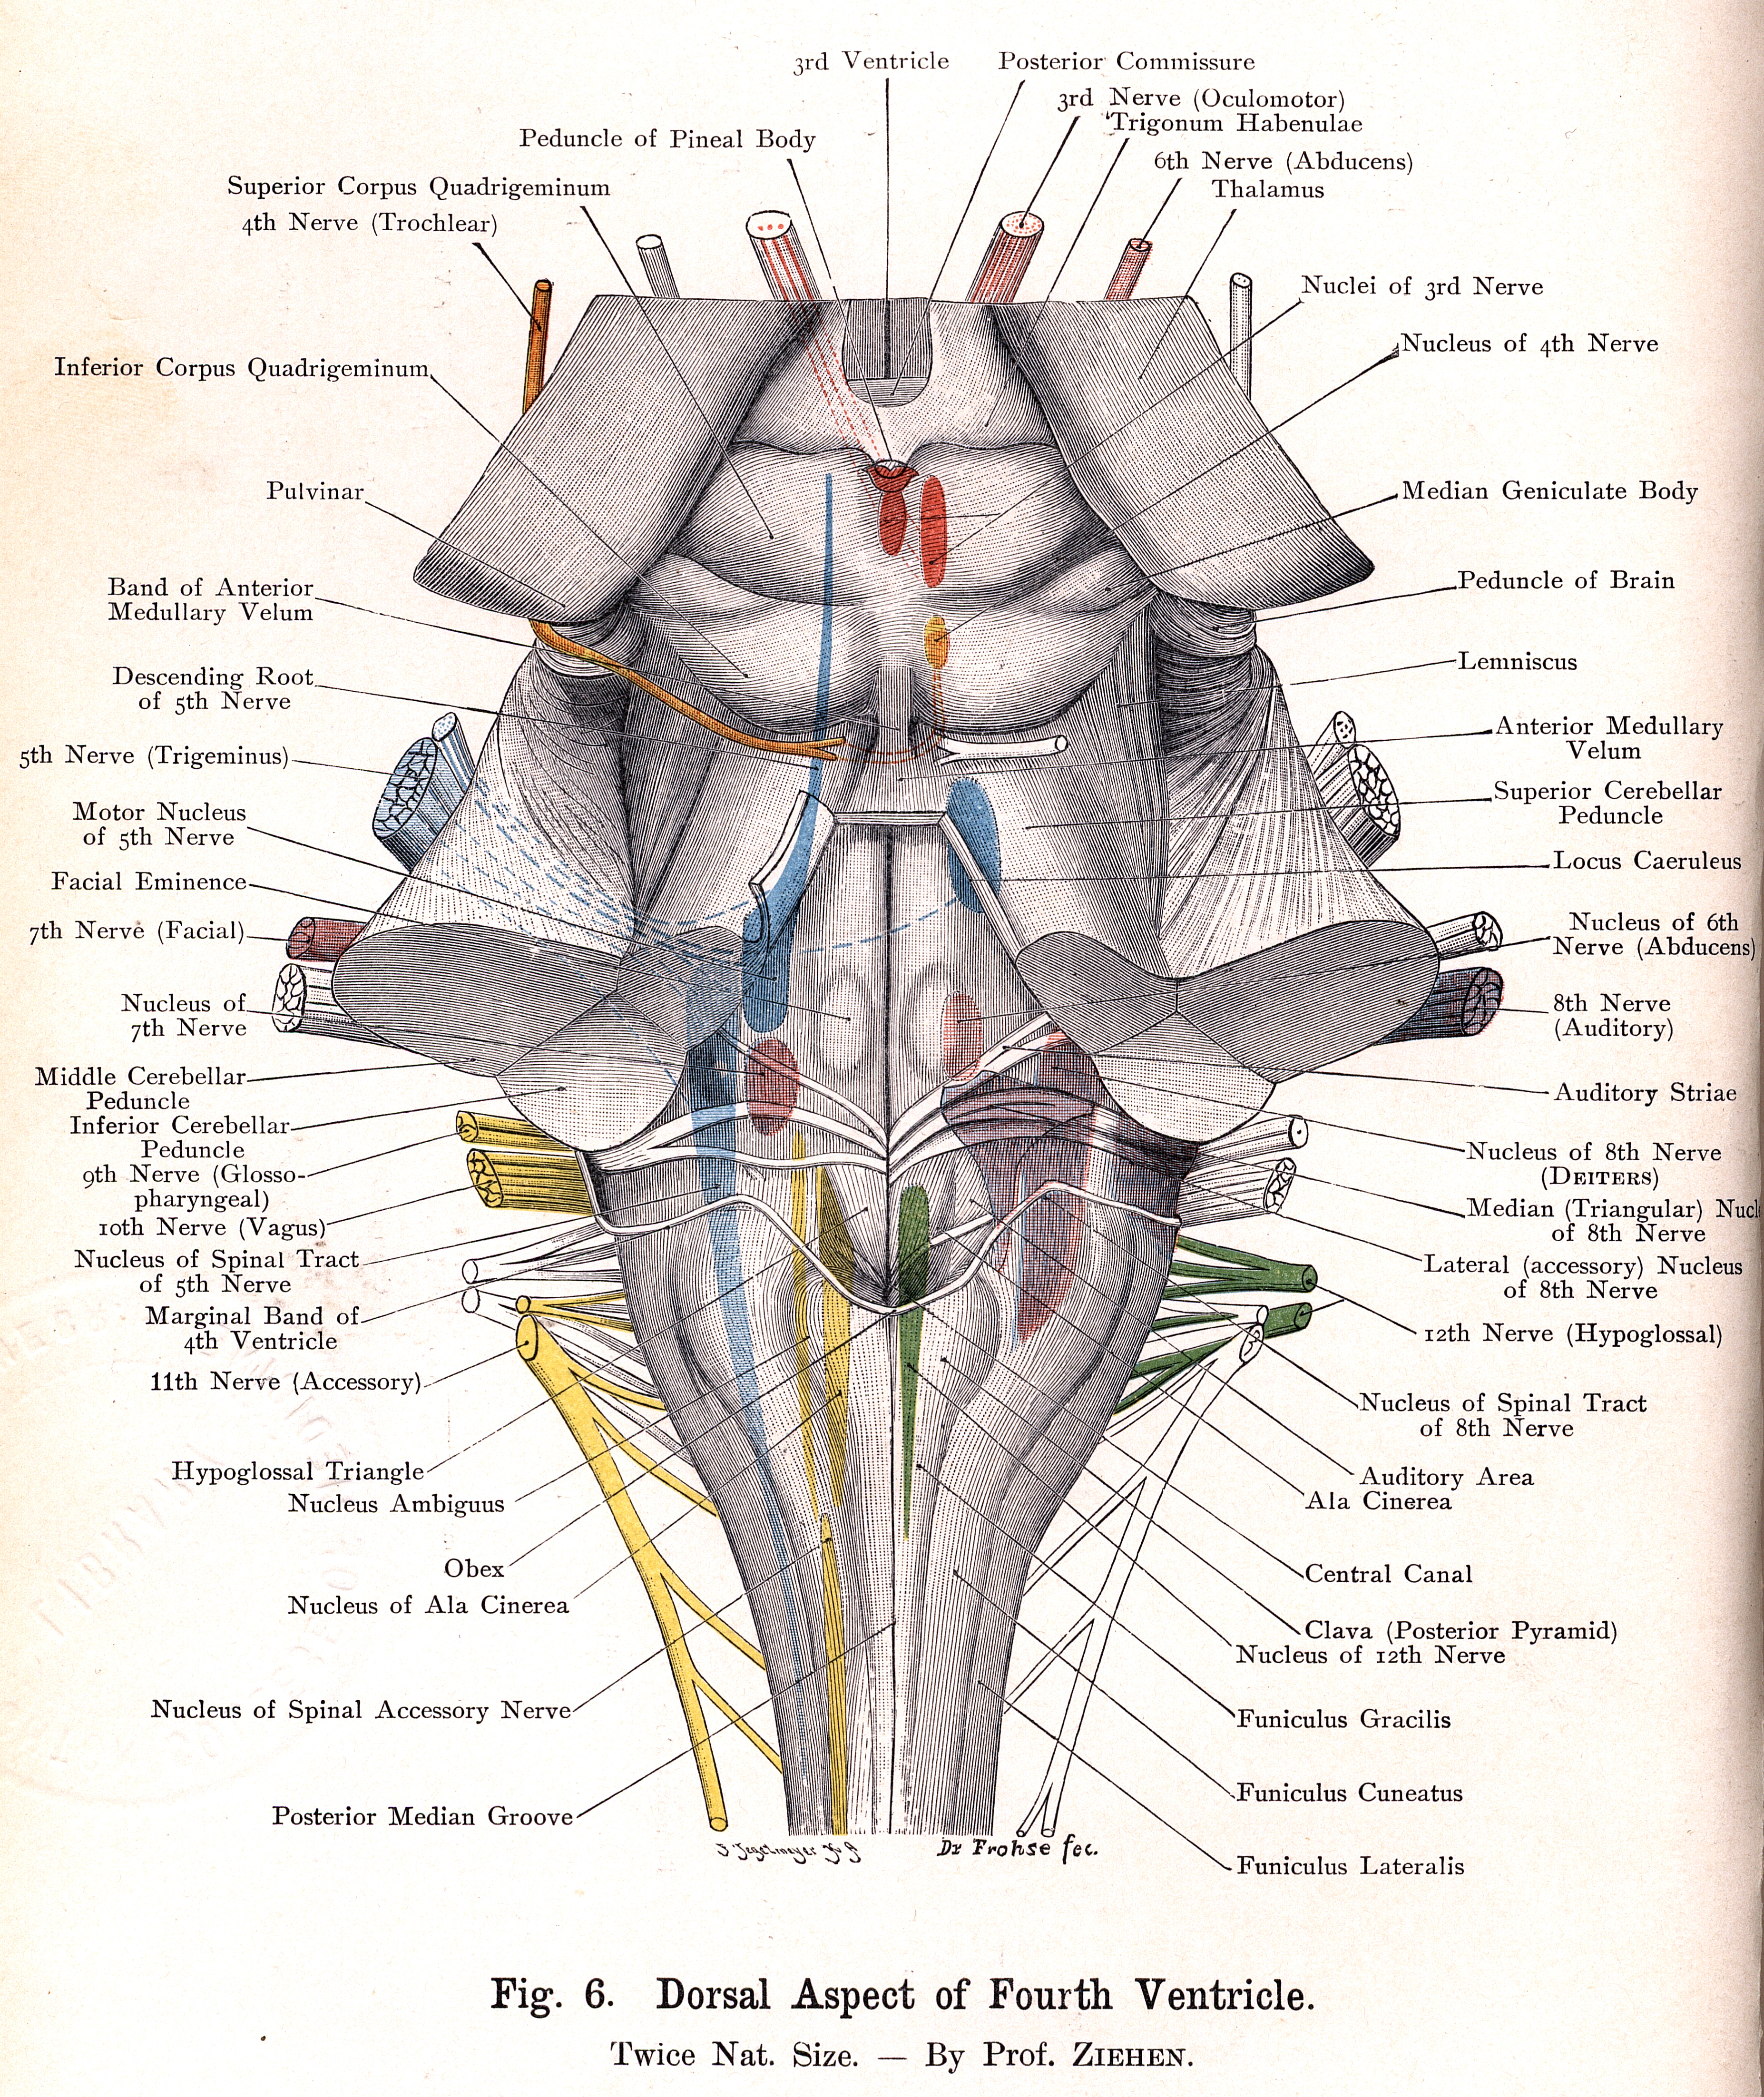 6. Dorsal Aspect of Fourth Ventricle